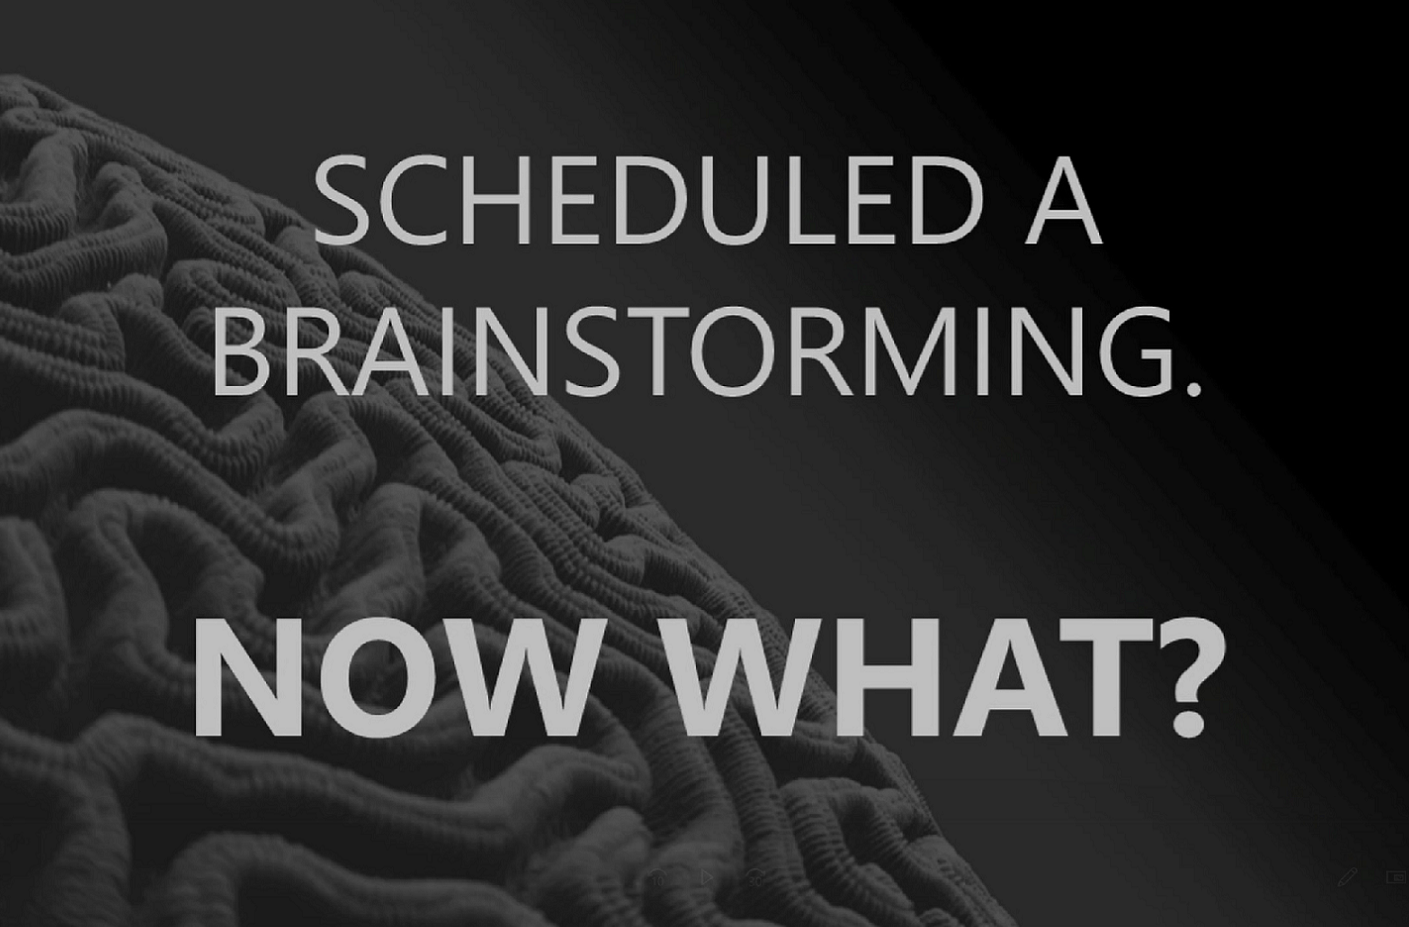 You Have Scheduled a Brainstorming. Now What?